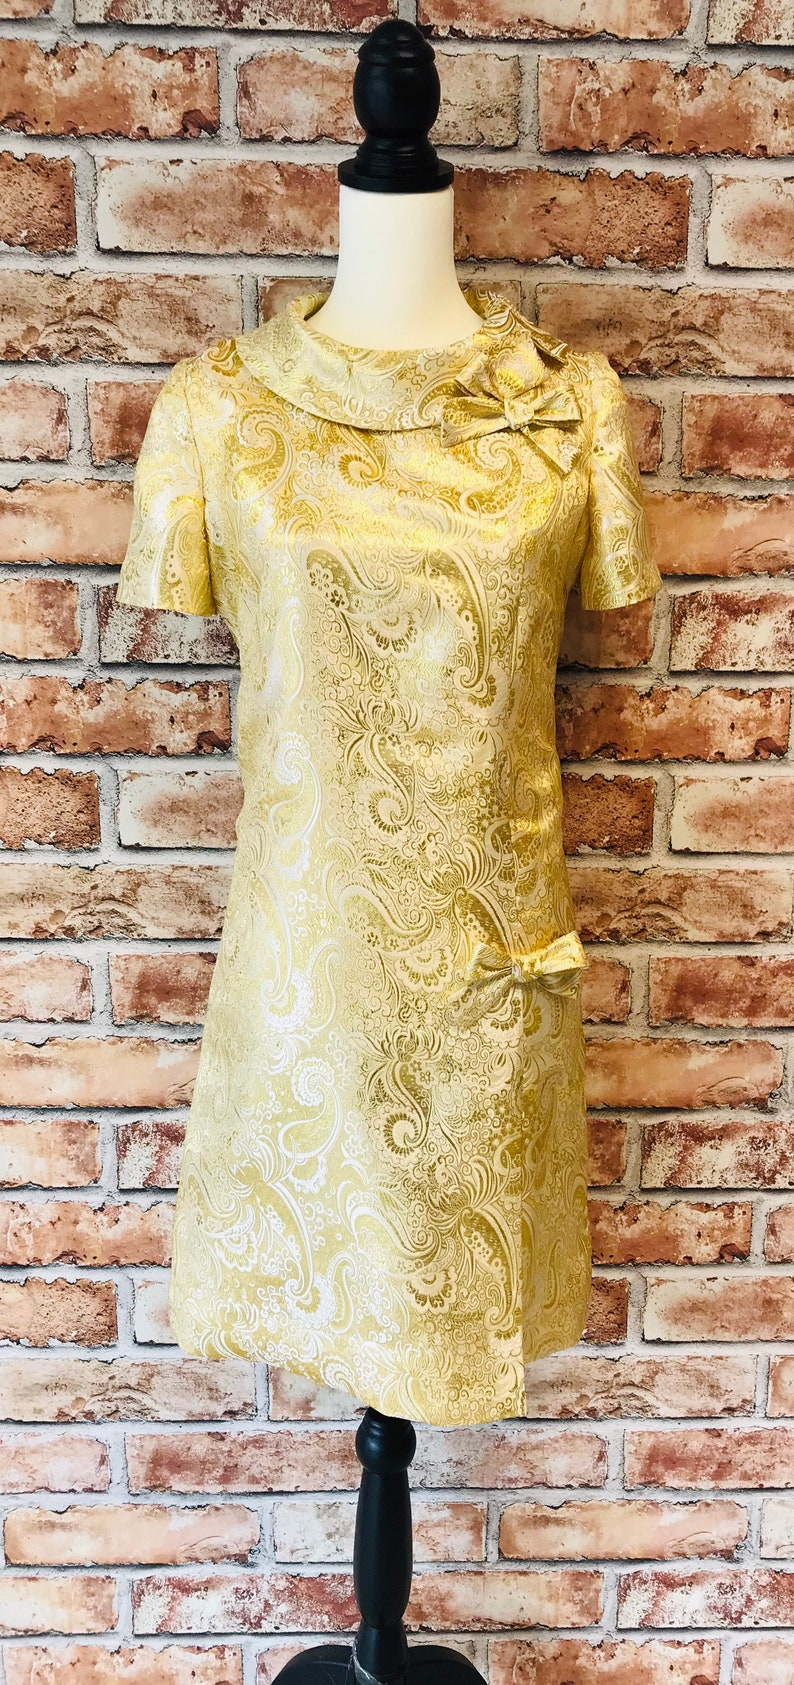 60s Dresses | 1960s Dresses Mod, Mini, Hippie Mod Dress Classic 1960s Style Gold paisley $146.00 AT vintagedancer.com